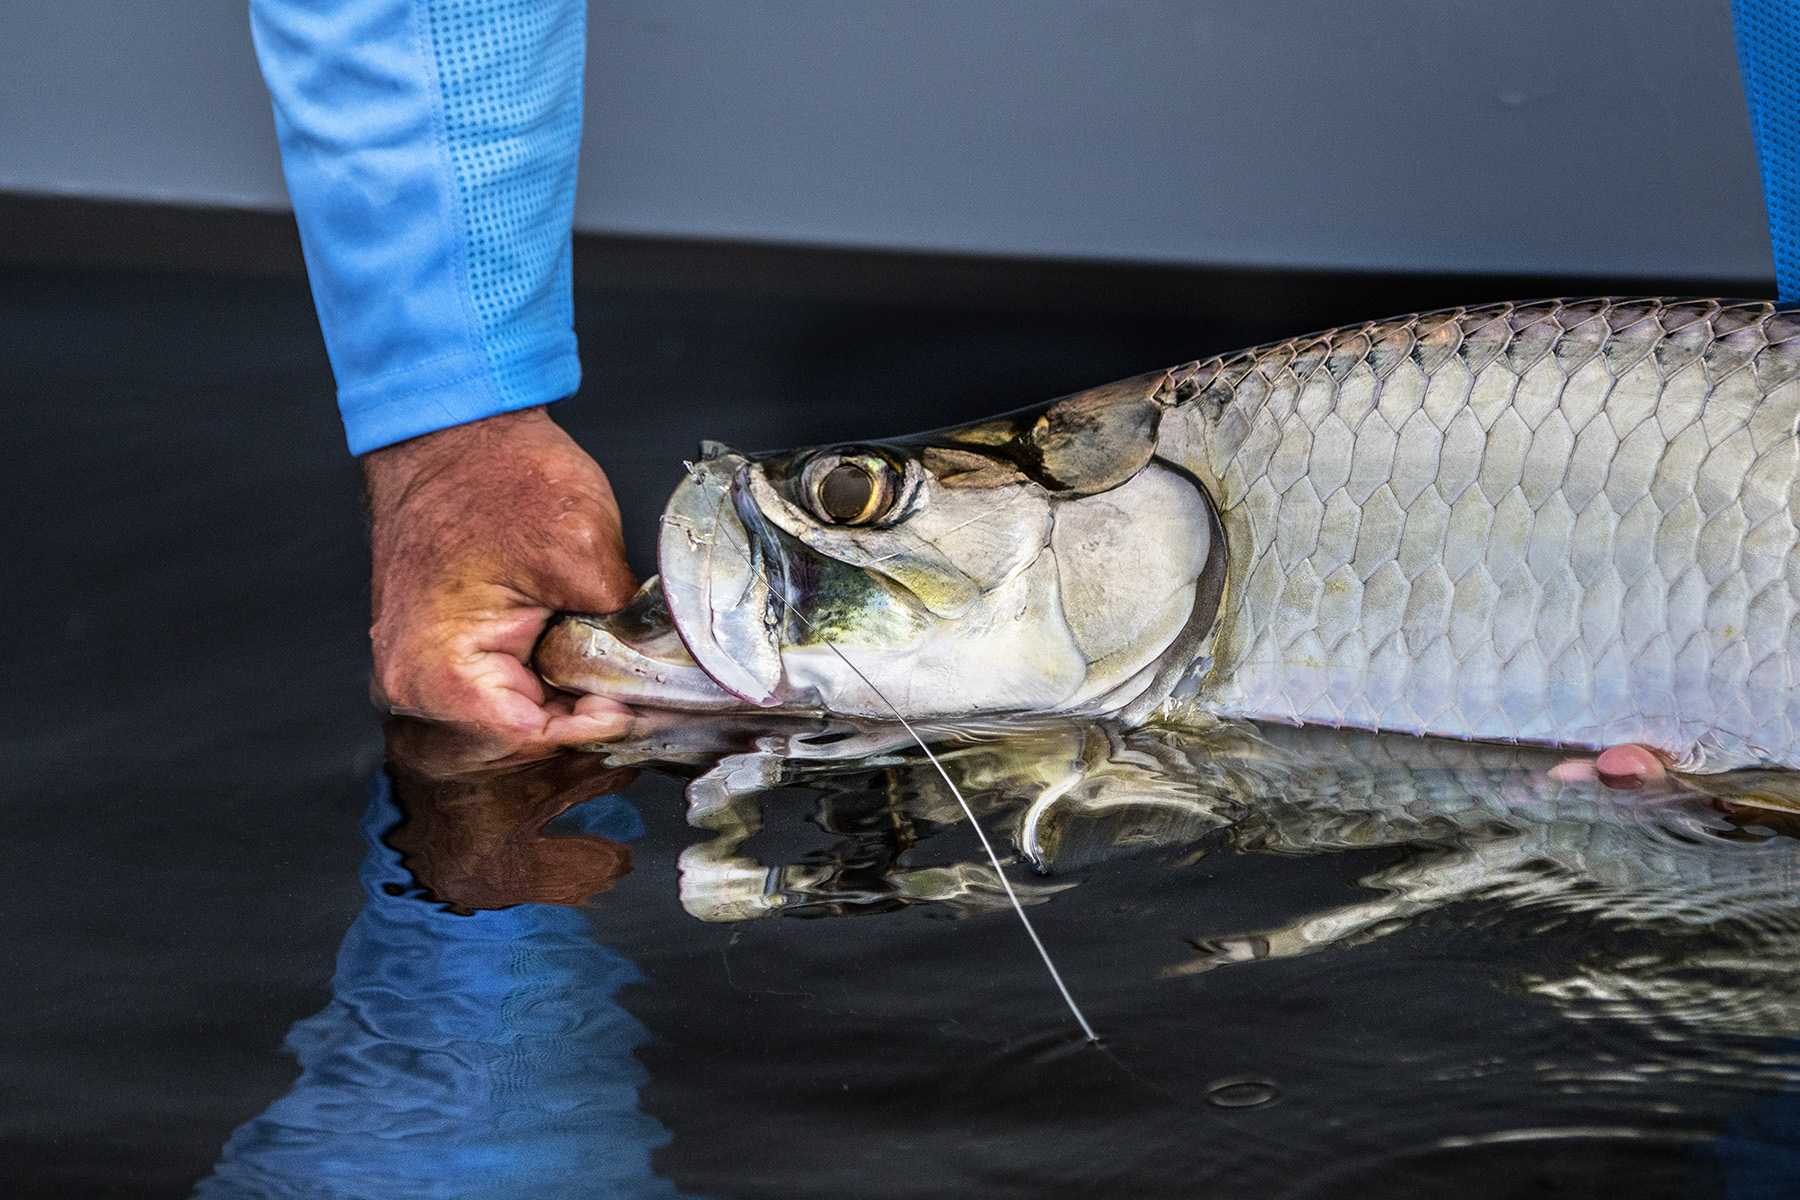 Don't take the tarpon out of the water.